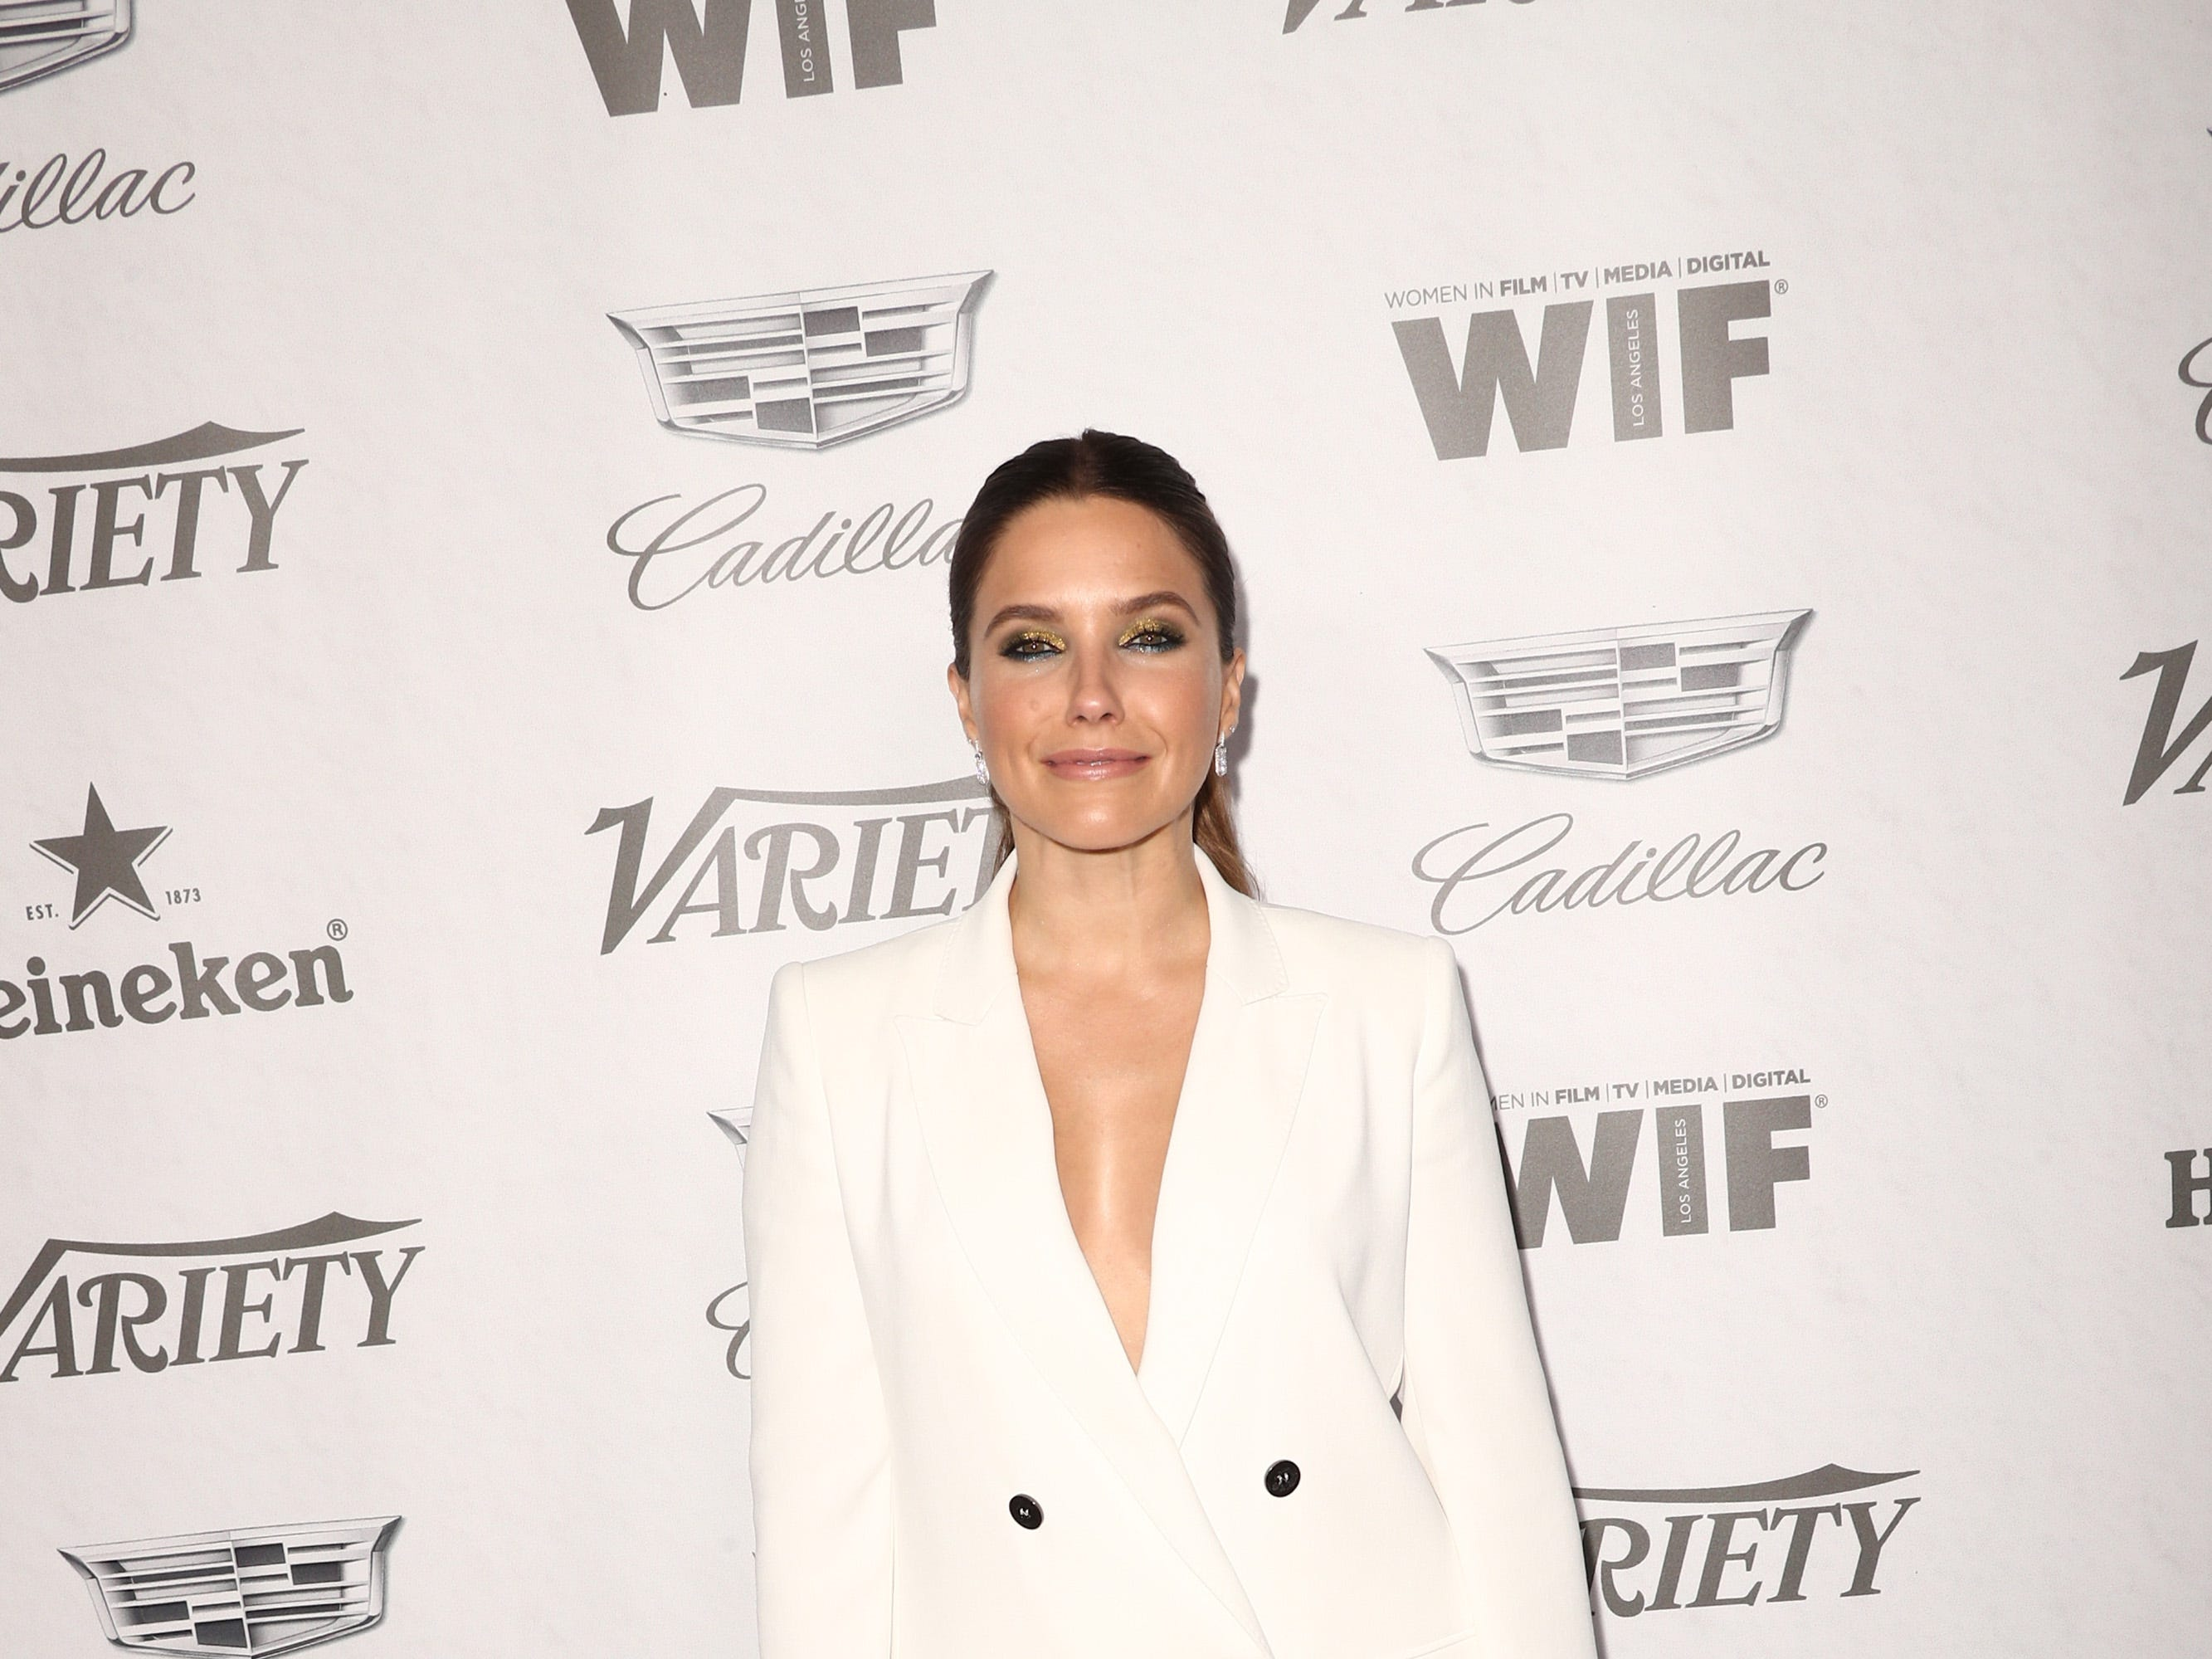 WEST HOLLYWOOD, CA - SEPTEMBER 15:  Sophia Bush attends Variety and Women in Film's 2018 Pre-Emmy Celebration at Cecconi's on September 15, 2018 in West Hollywood, California.  (Photo by Frederick M. Brown/Getty Images) ORG XMIT: 775218358 ORIG FILE ID: 1033997620